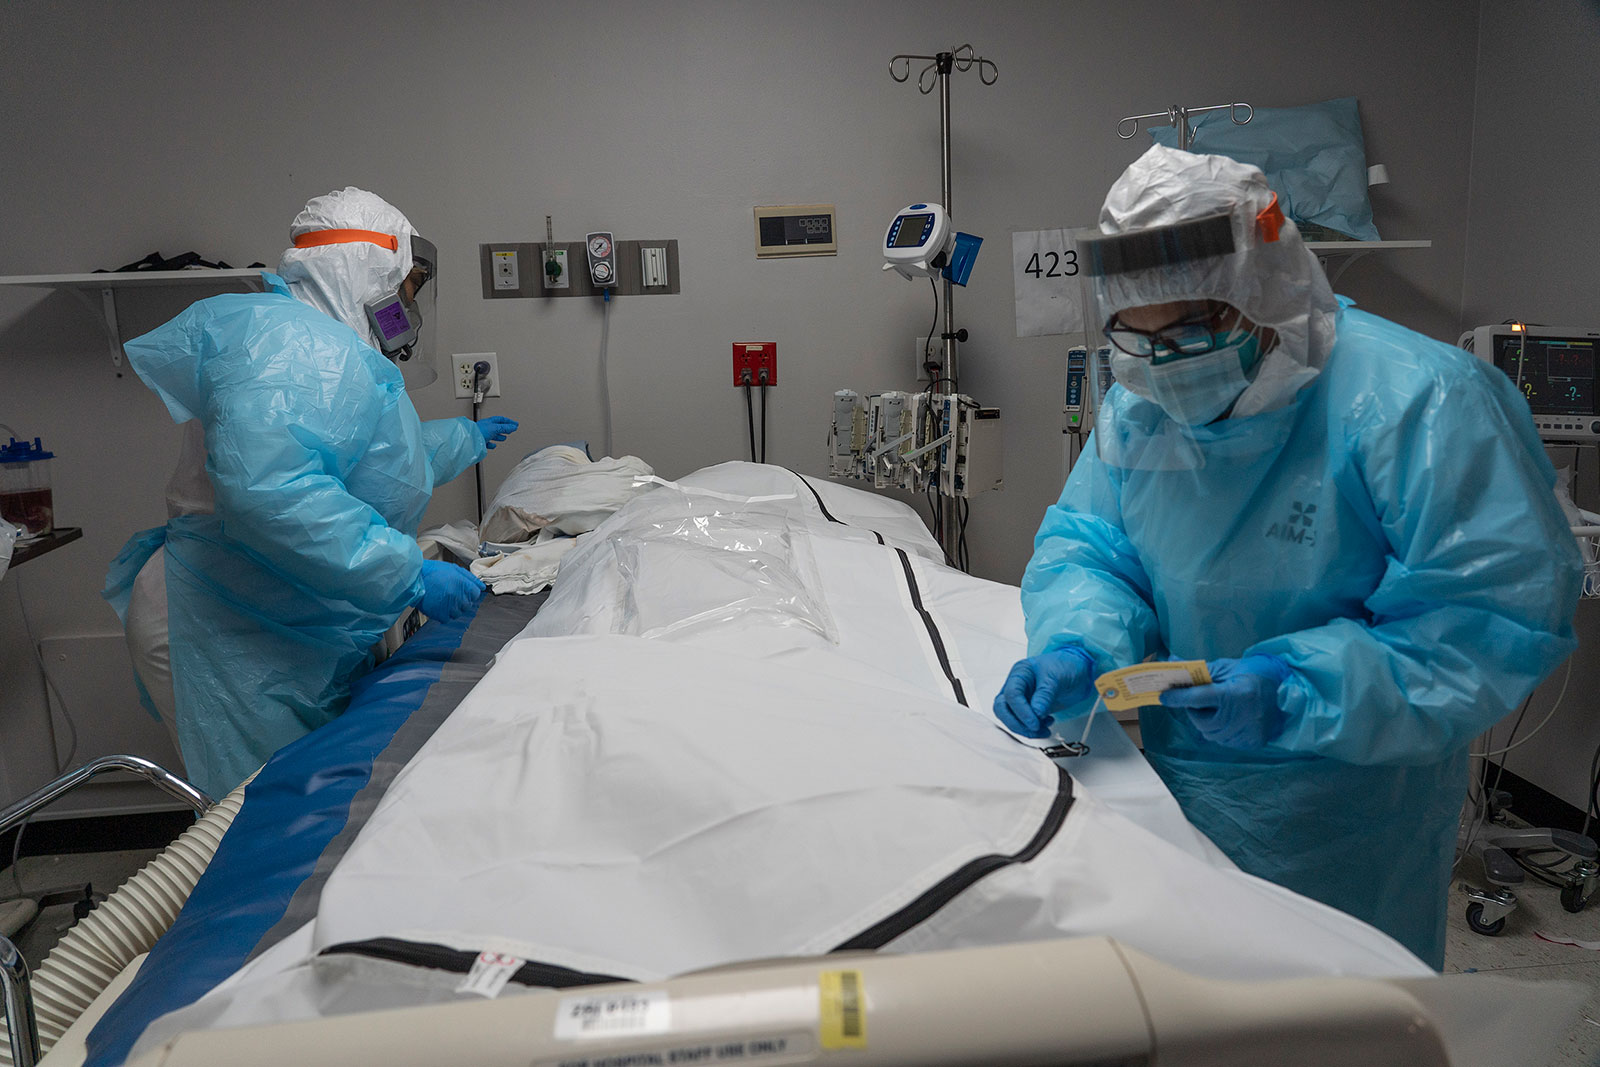 Medical staff members tie a tag onto the body bag of a coronavirus victim at United Memorial Medical Center in Houston, Texas, on November 25.